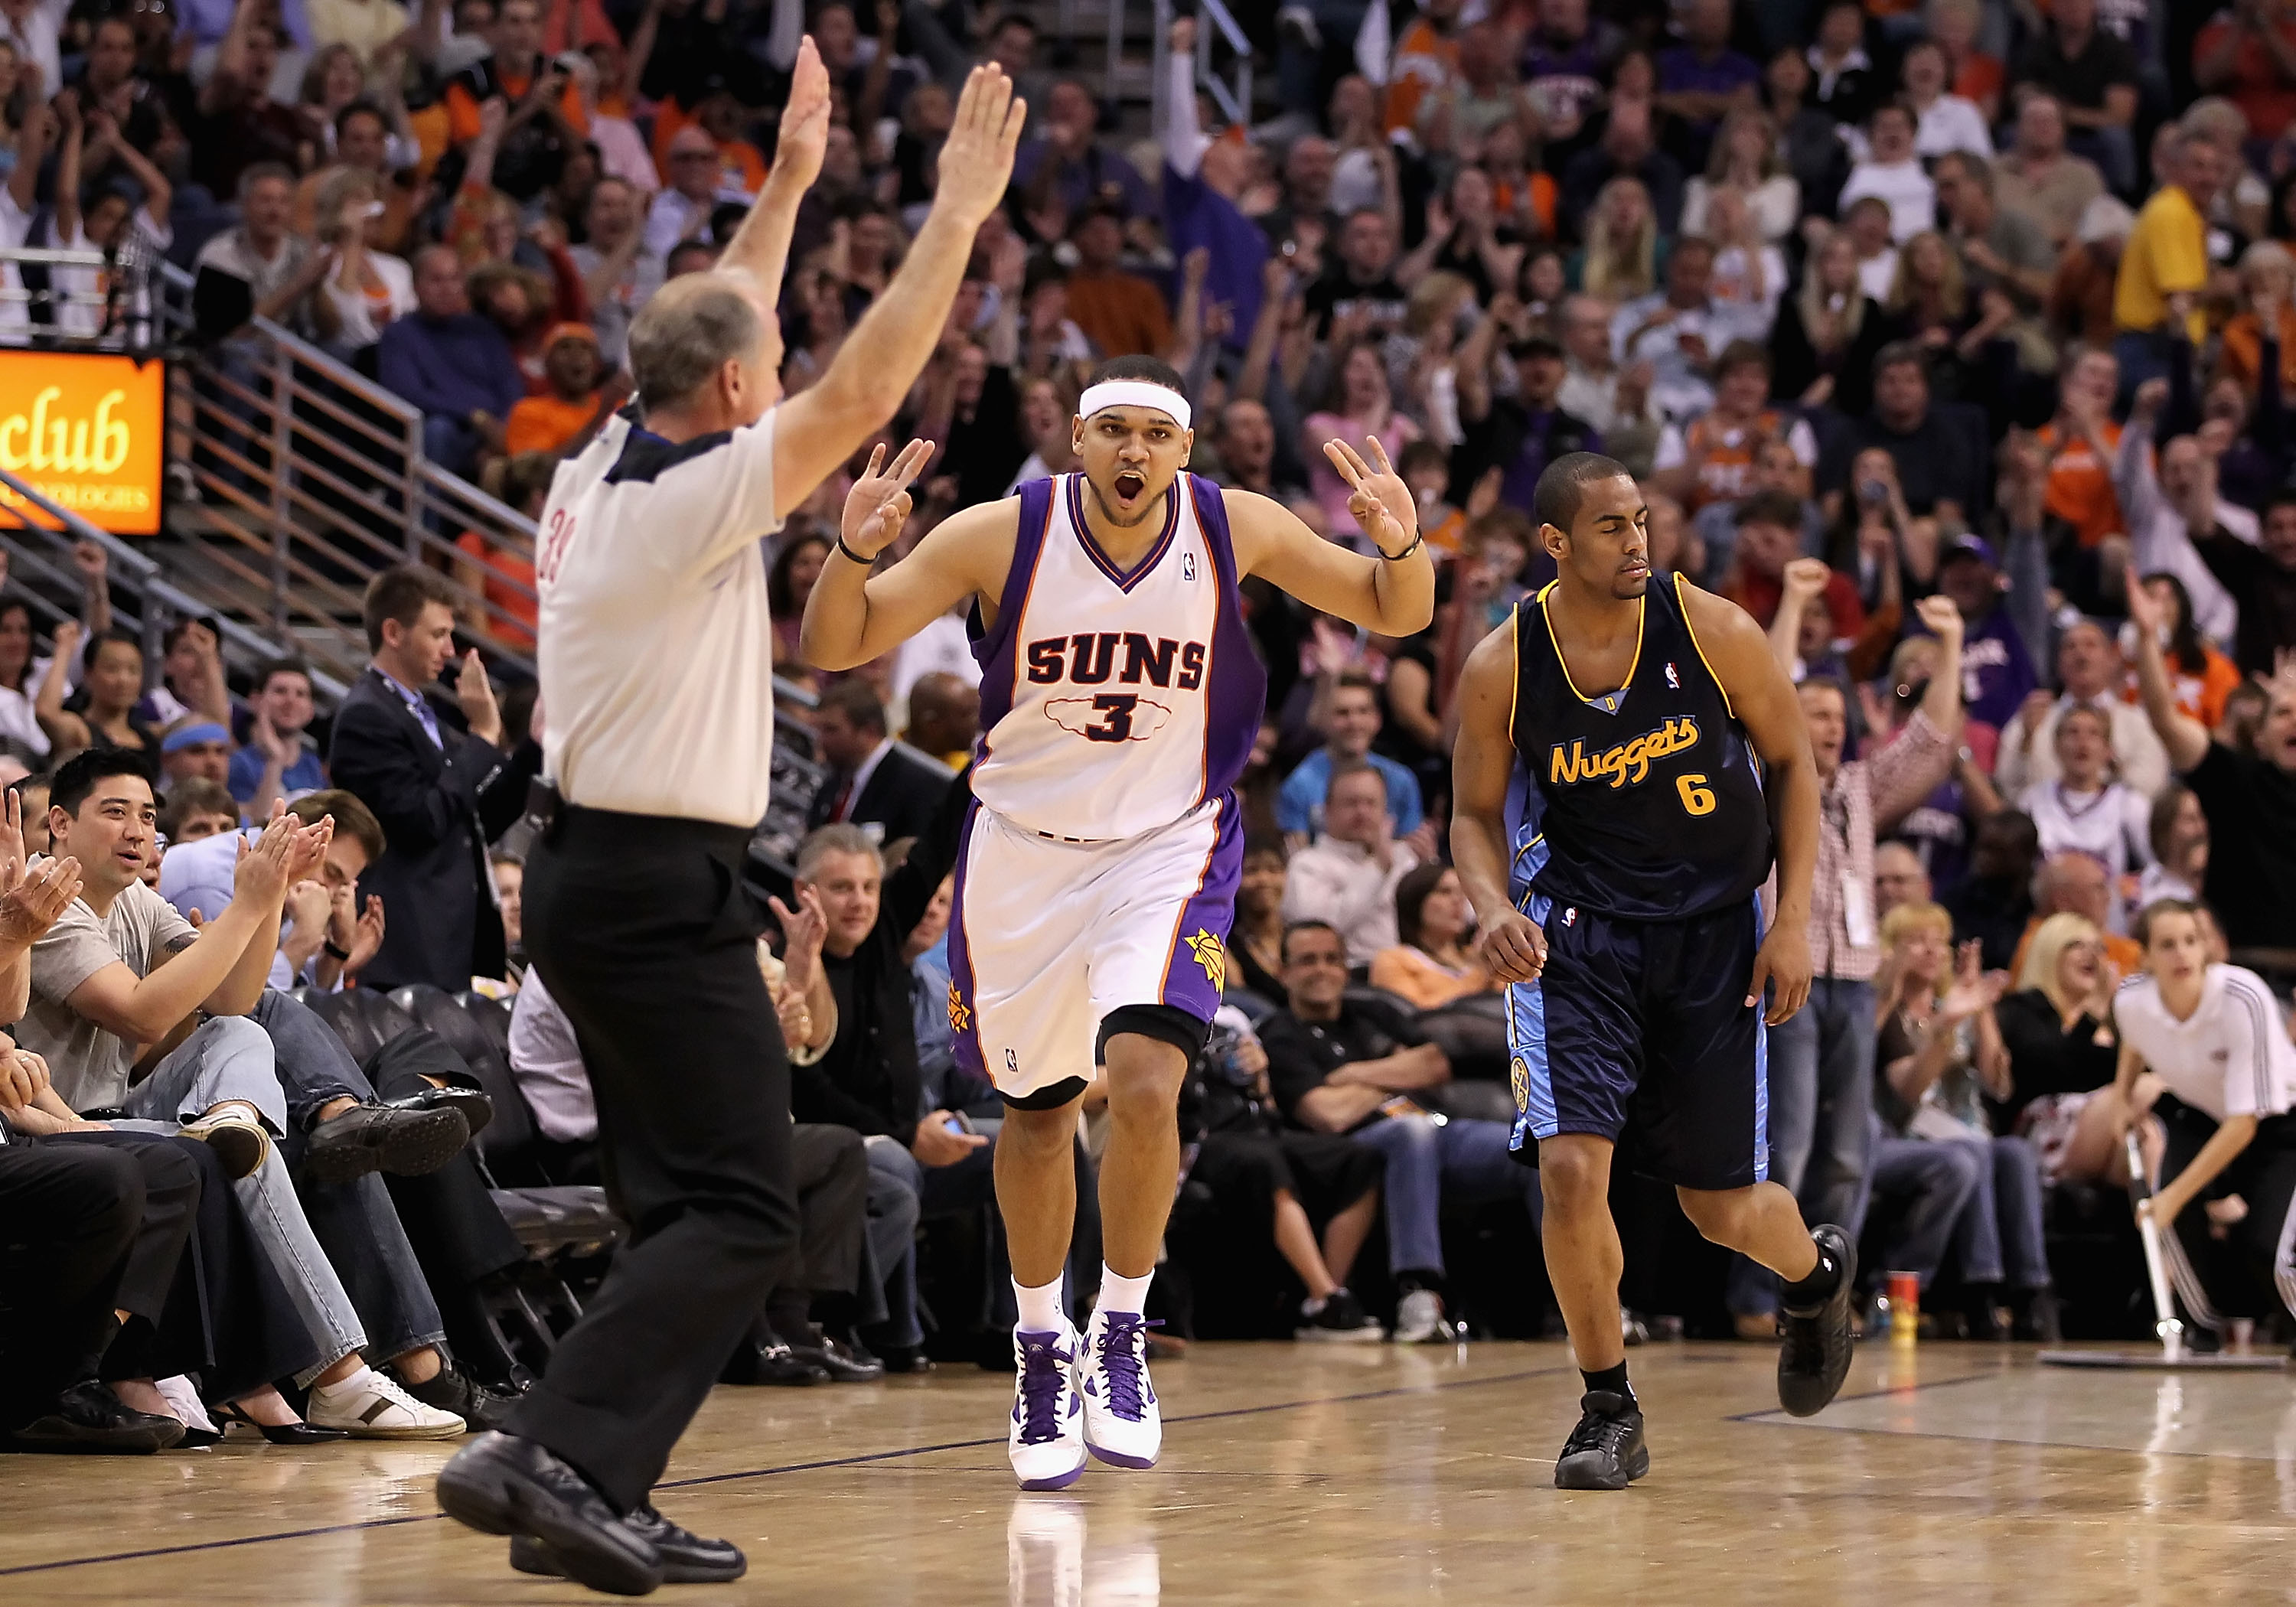 PHOENIX - APRIL 13:  Jared Dudley #3 of the Phoenix Suns reacts after hitting a three point shot over Arron Afflalo #6 of the Denver Nuggets during the NBA game at US Airways Center on April 13, 2010 in Phoenix, Arizona. NOTE TO USER: User expressly ackno